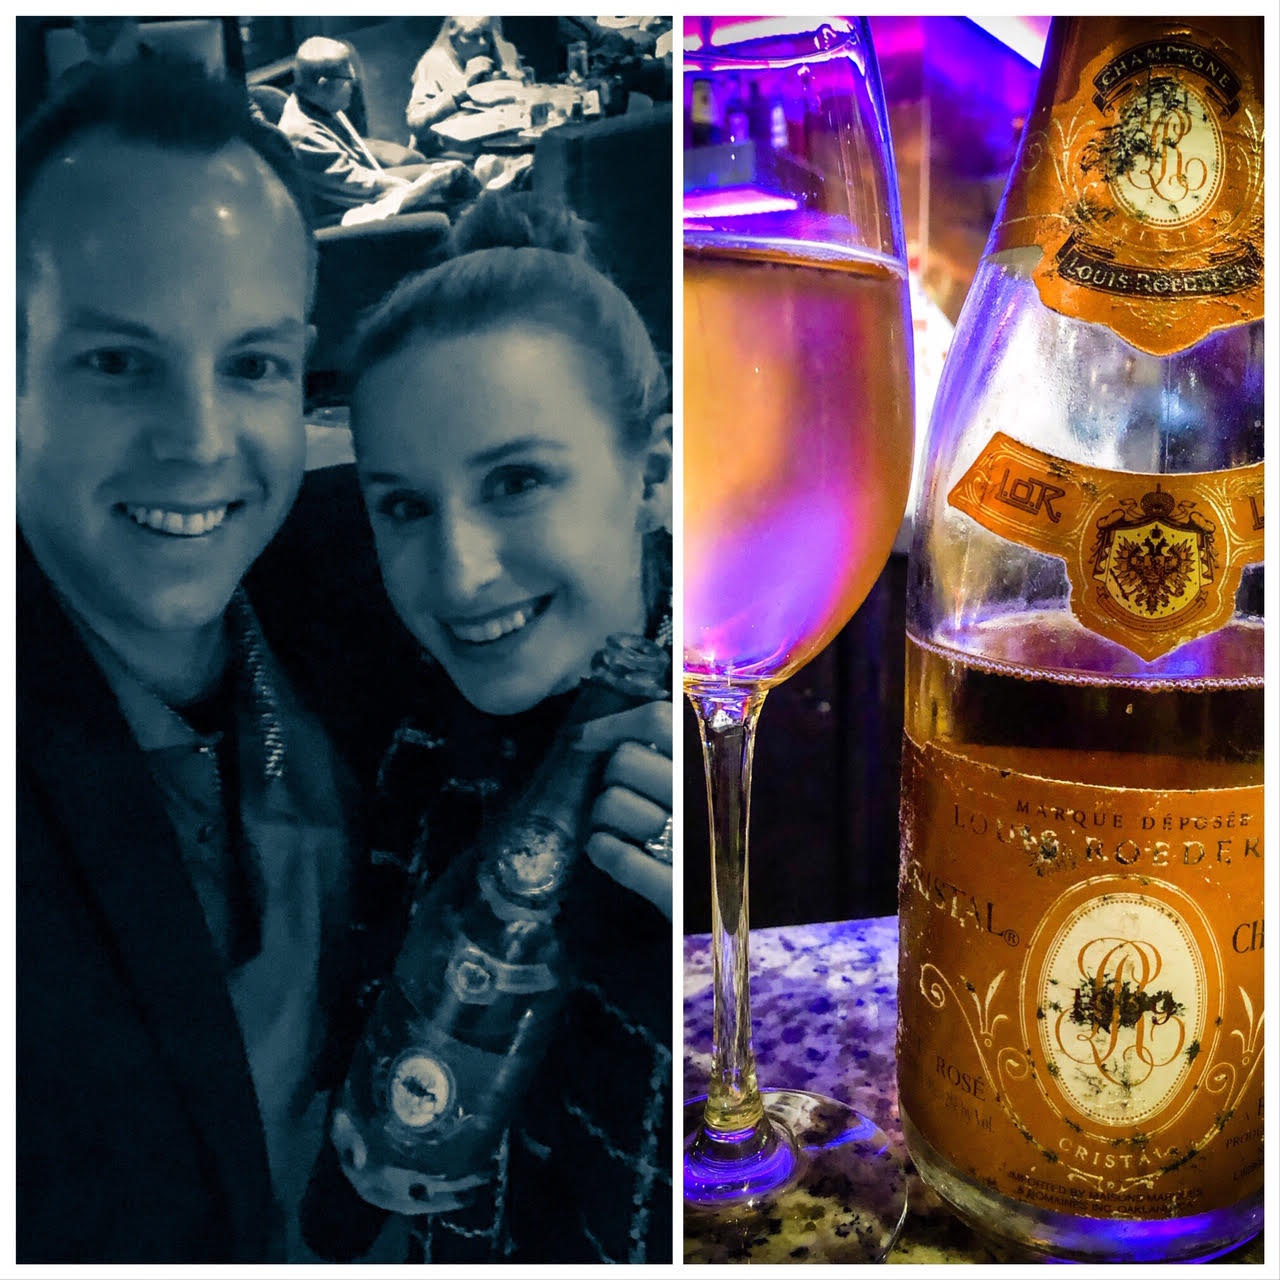 We celebrated in style with the 1999 Louis Roederer 'Cristal' Champagne